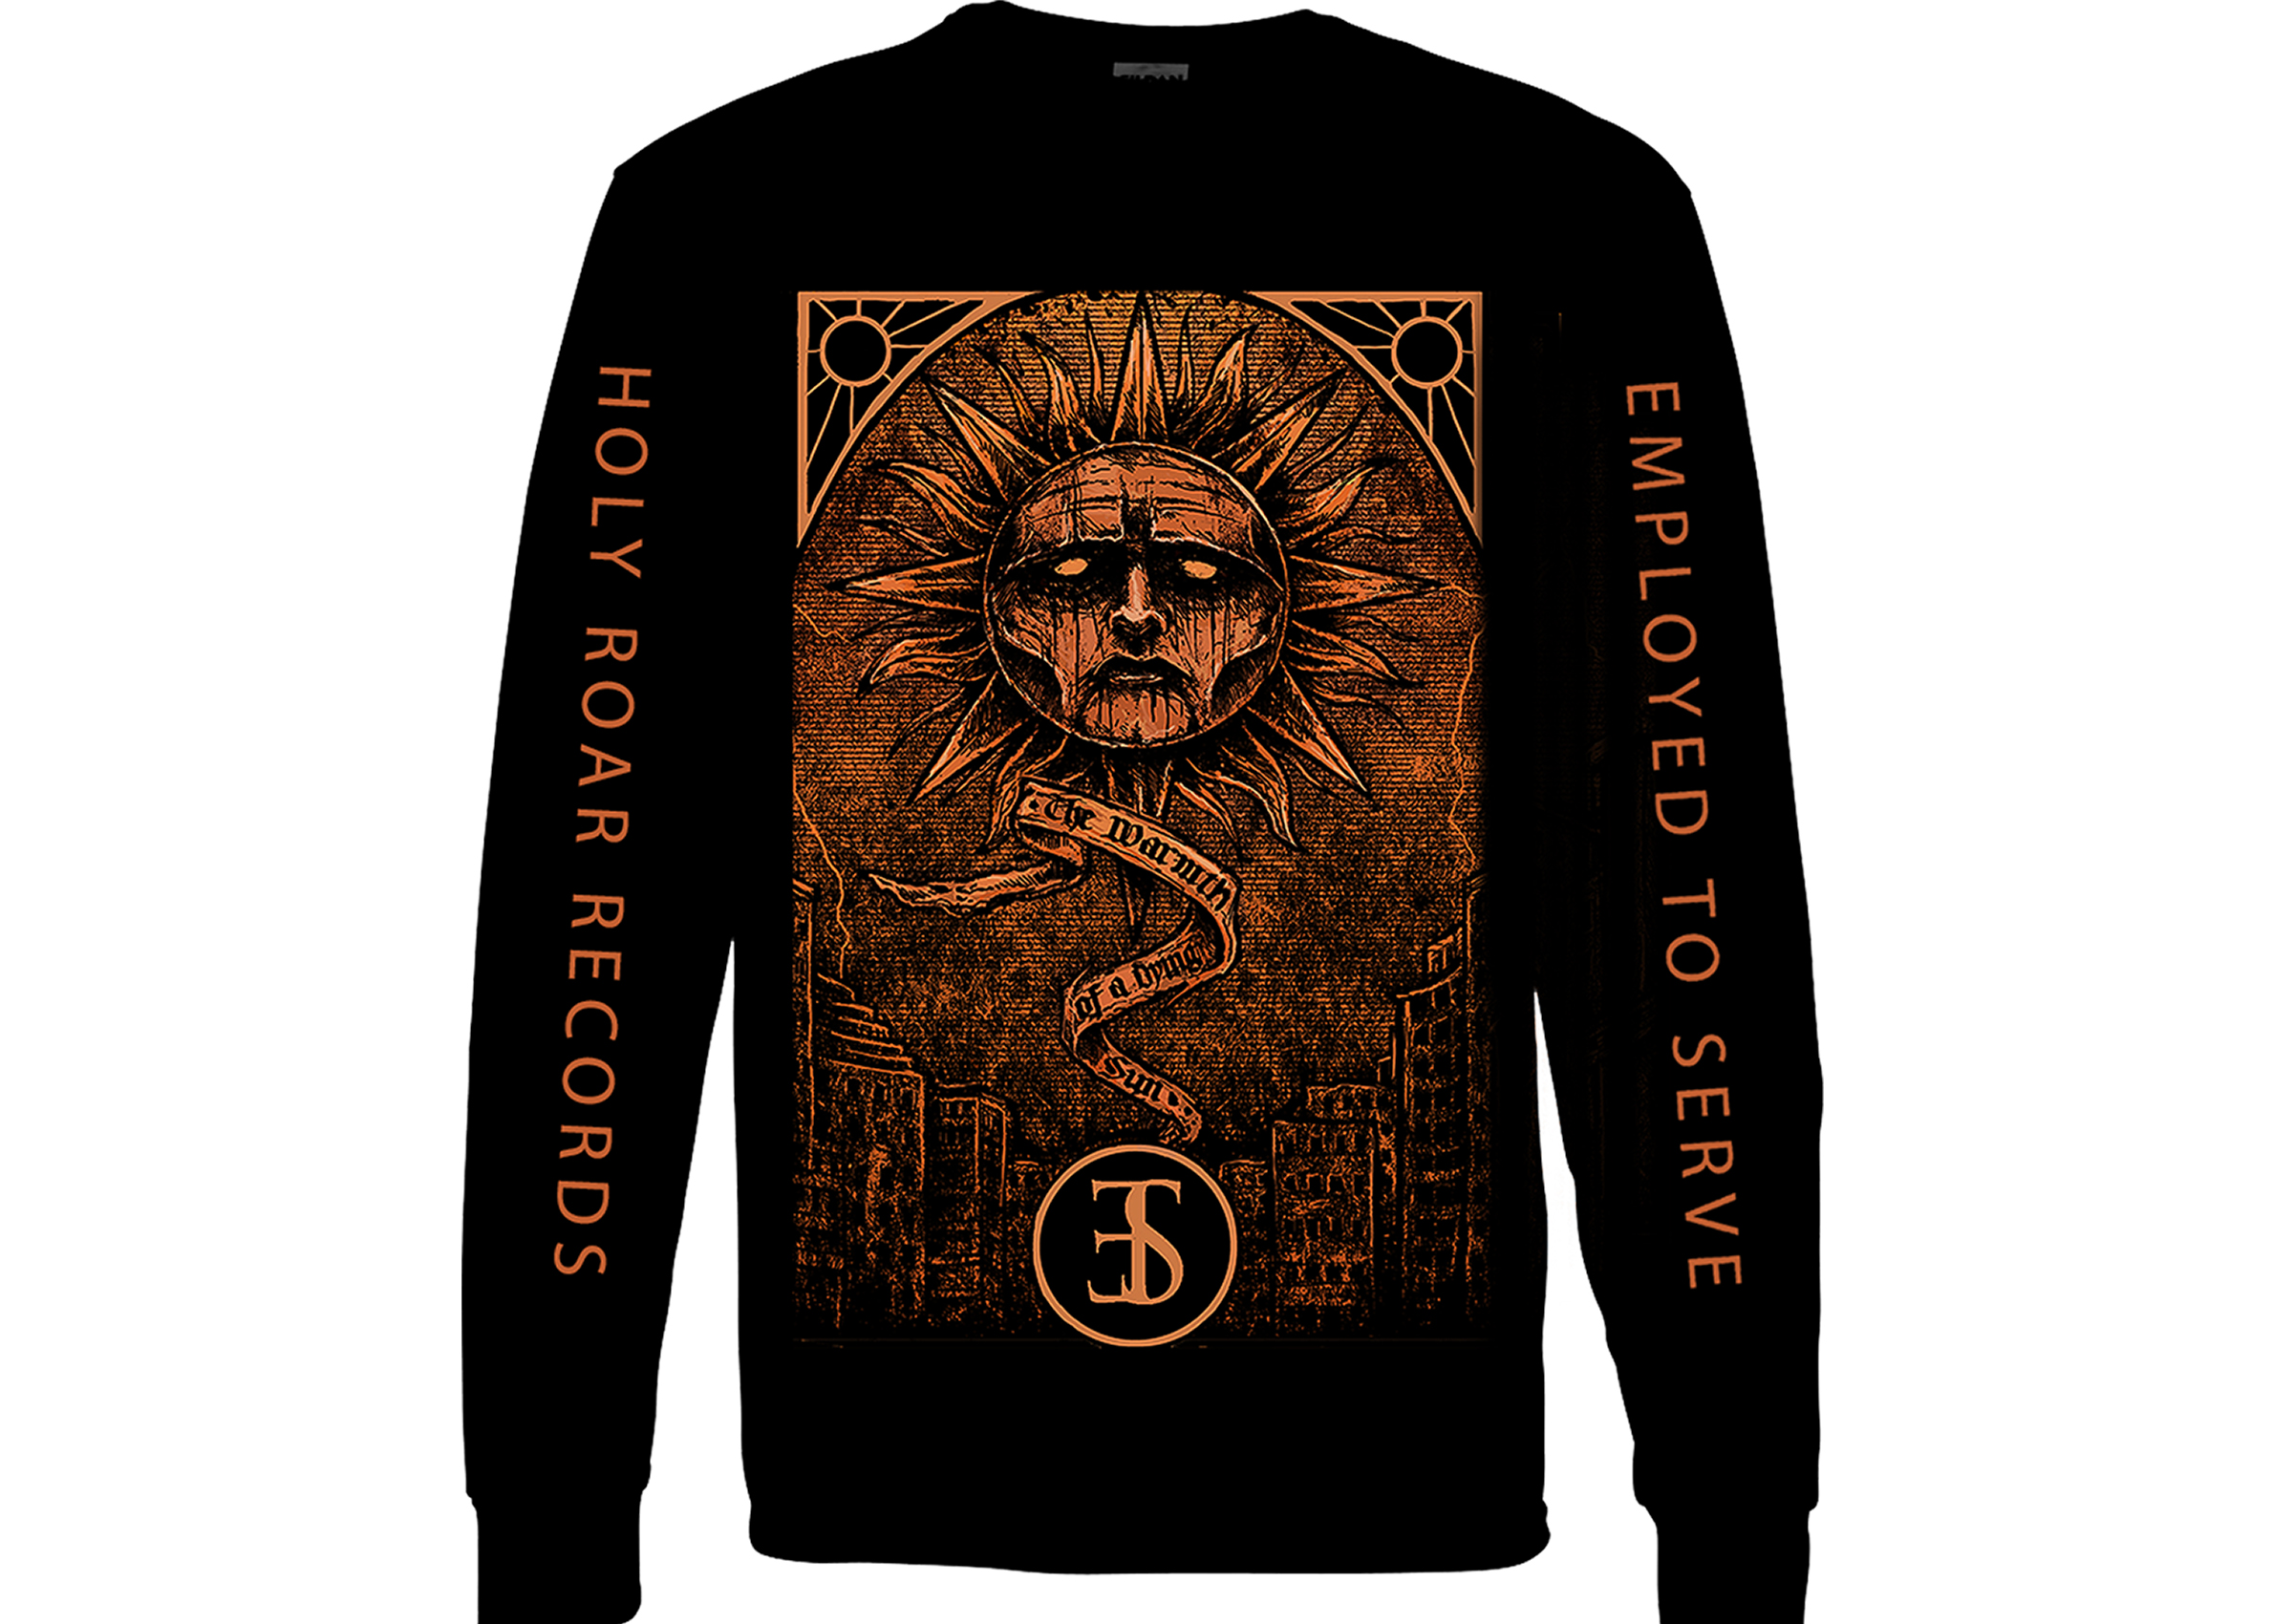 Employed To Serve - The Warmth Of A Dying Sun longsleeve PREORDER